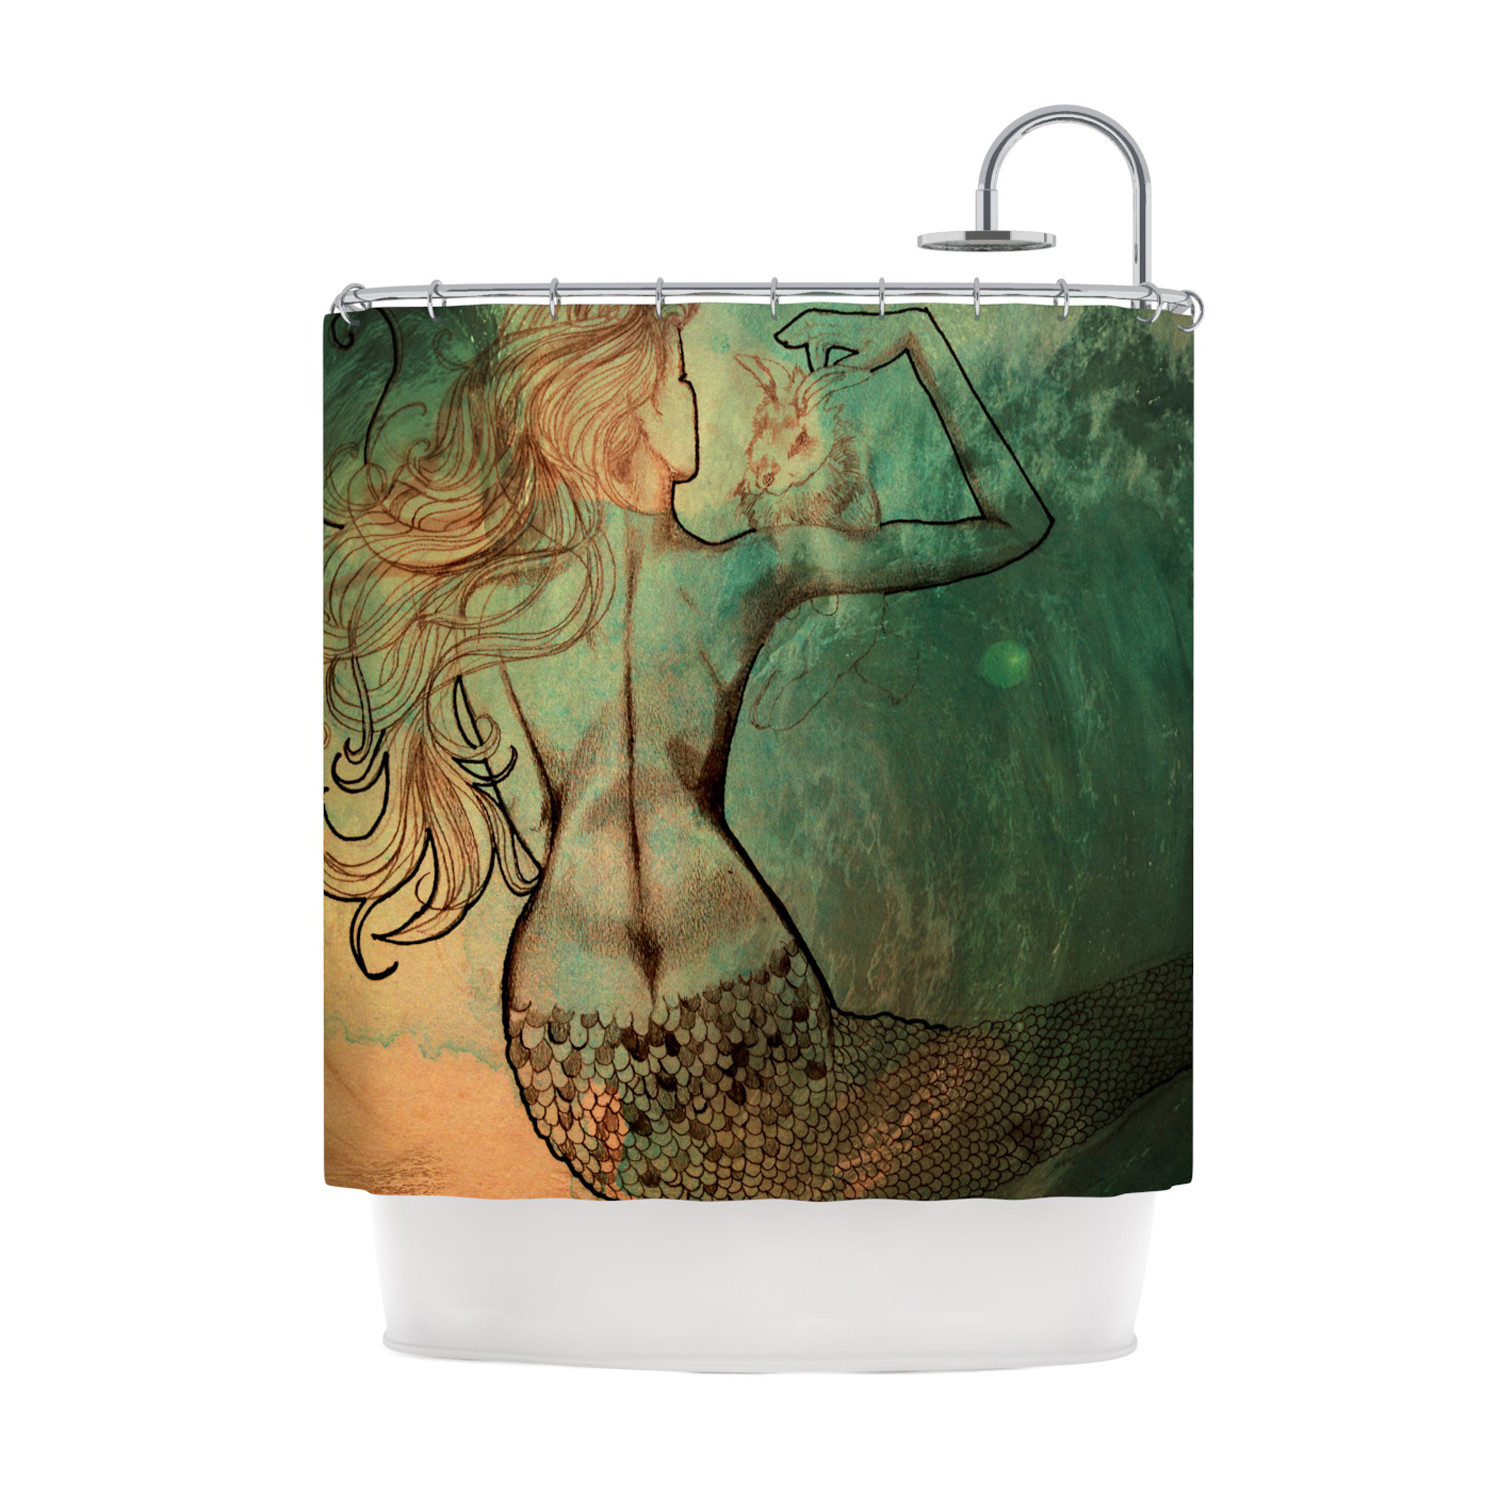 Mermaid shower curtains - Theresa Giolzetti Poor Mermaid Shower Curtain